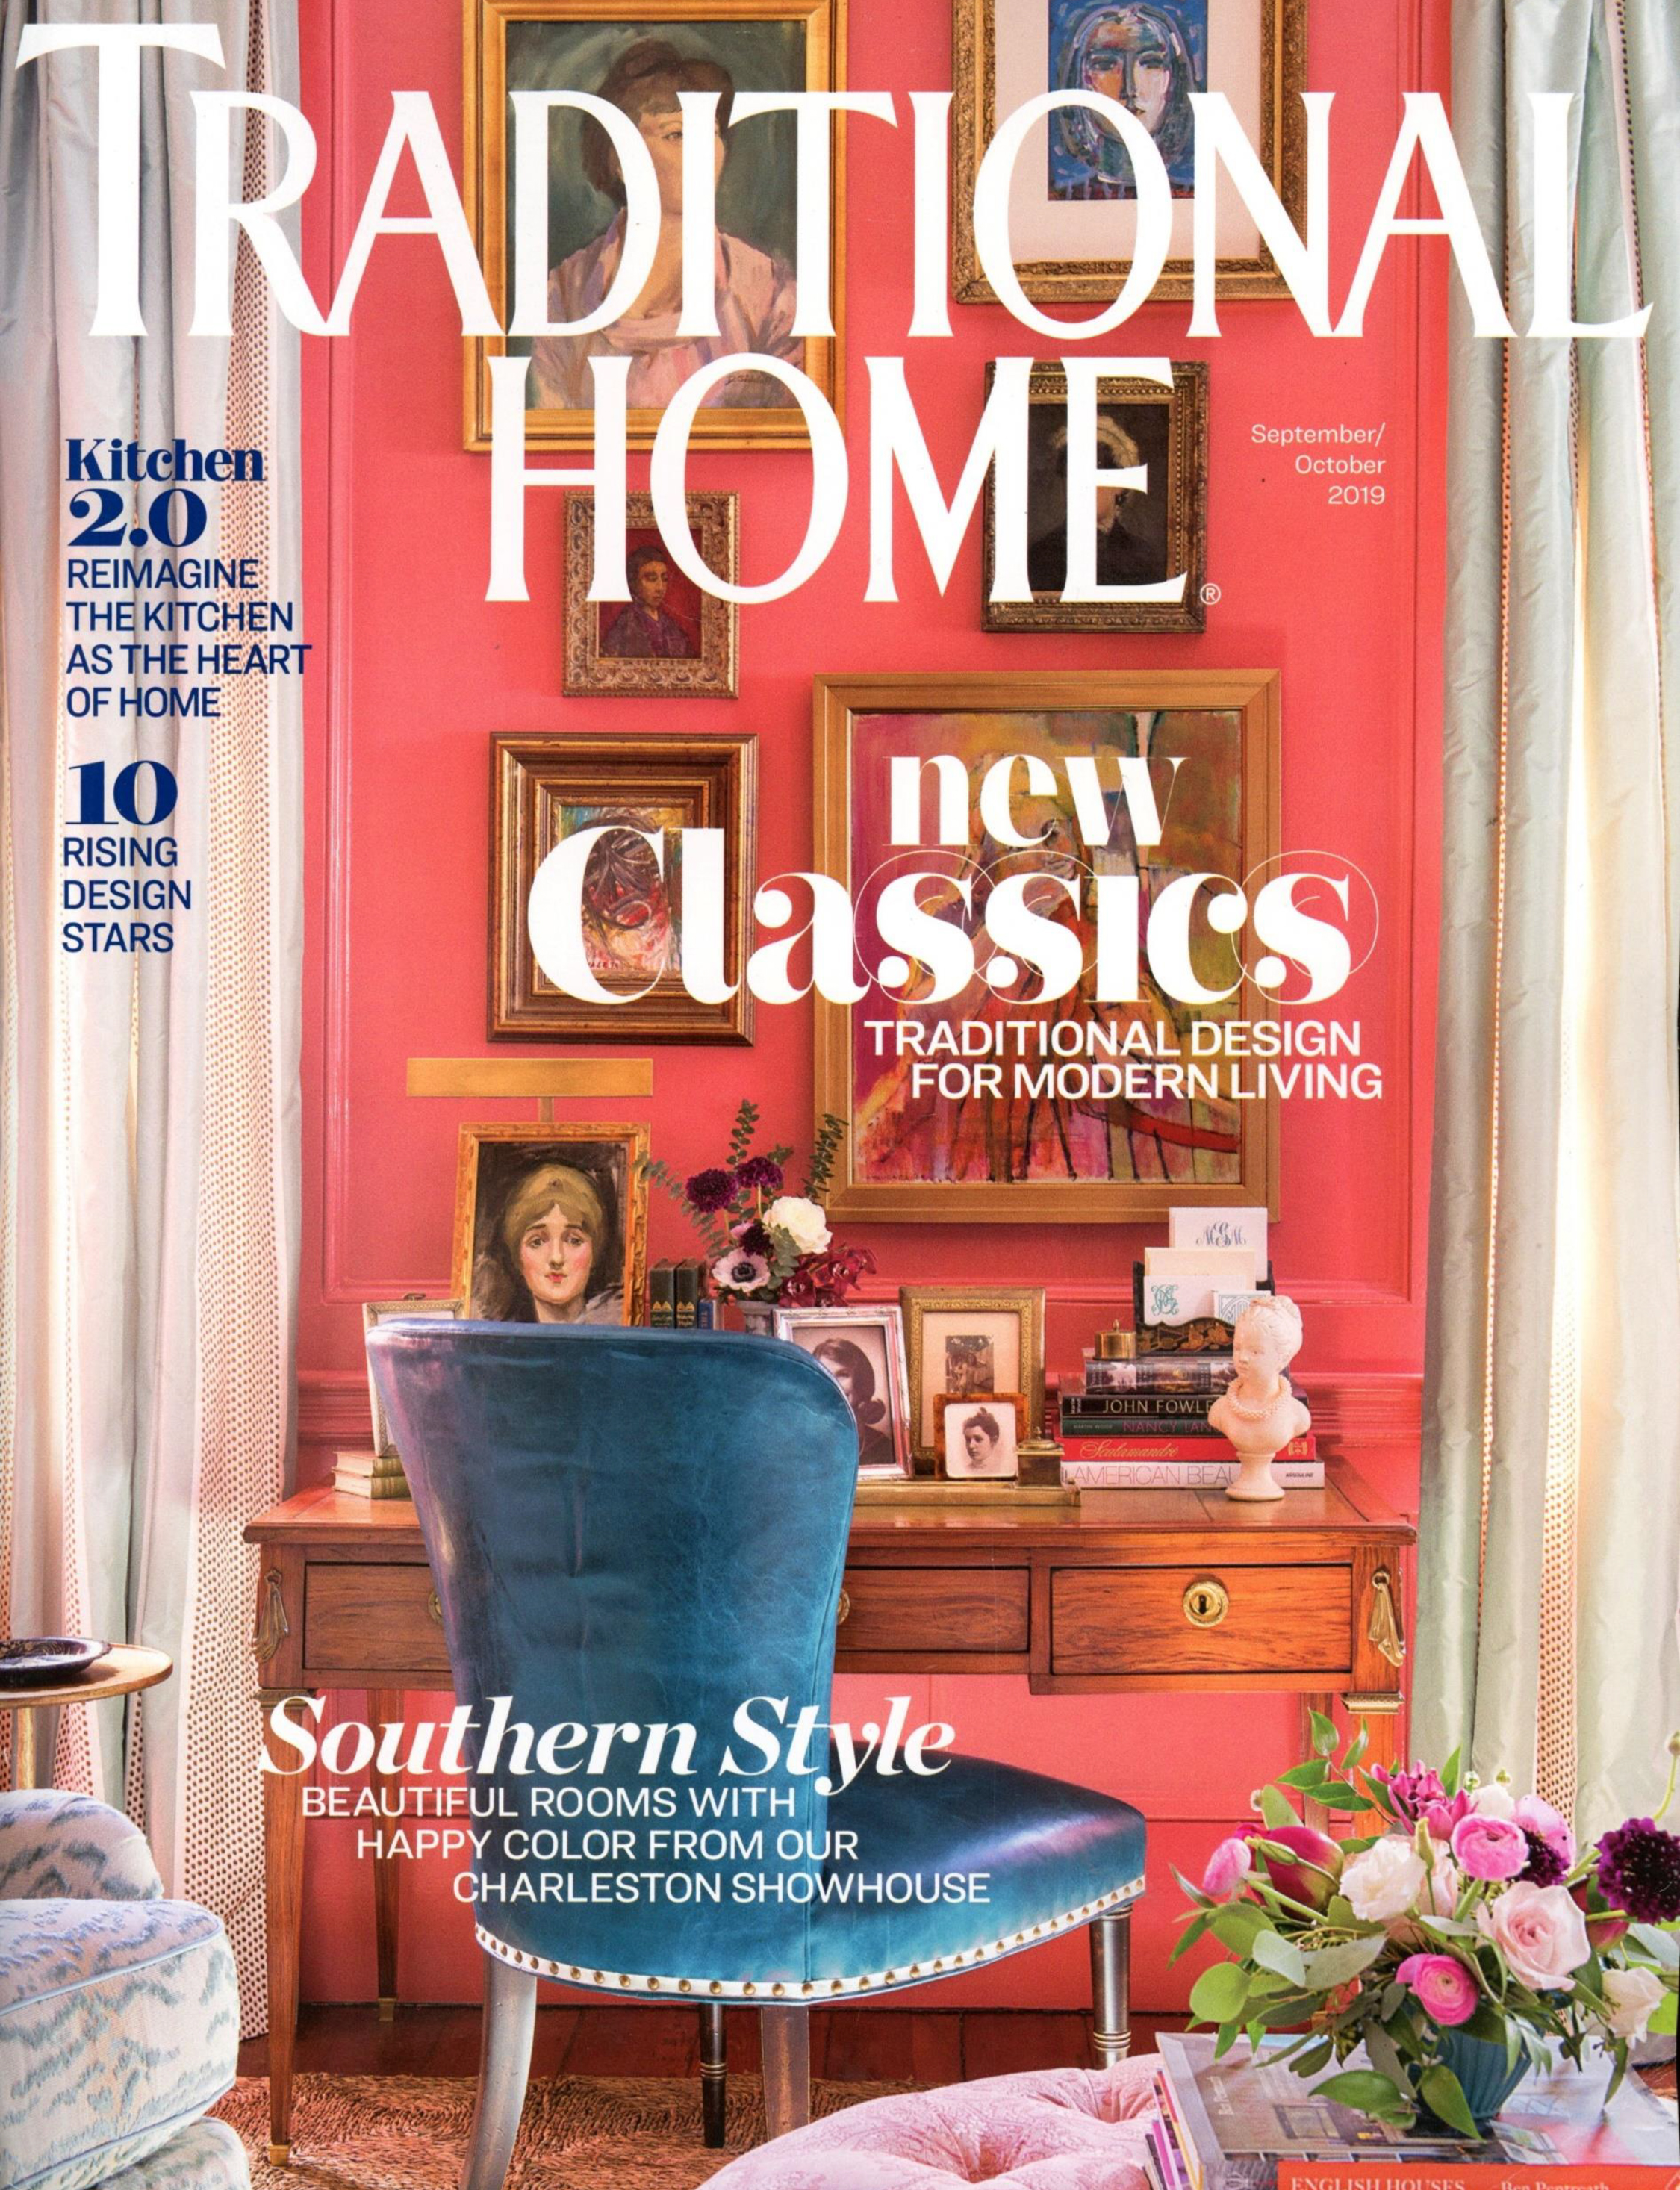 Traditional Home - Sept.Oct. '19 1.jpg